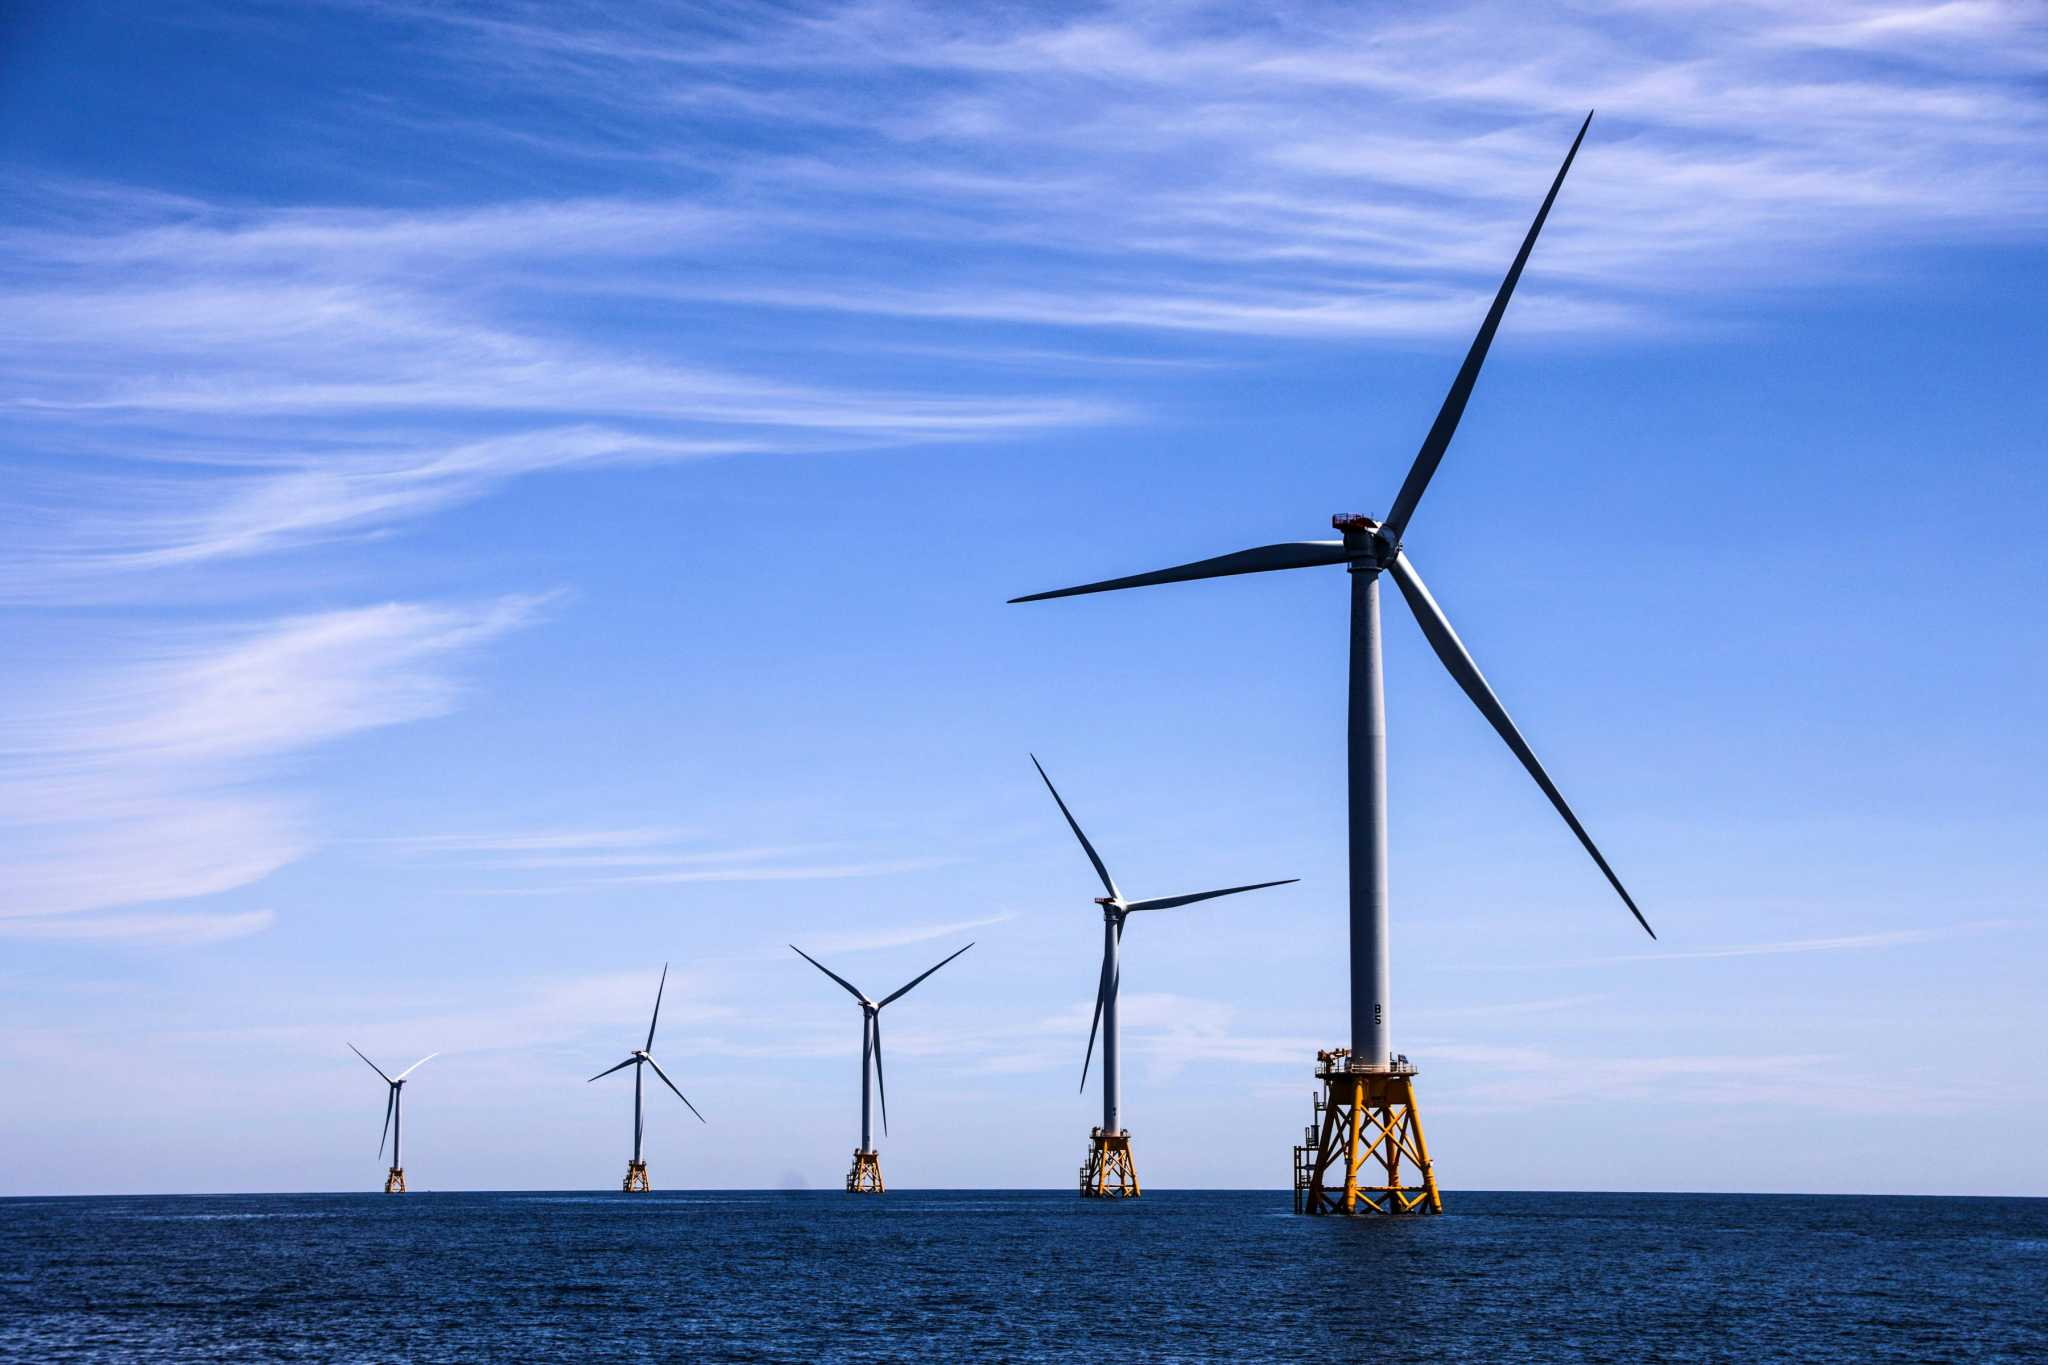 Renewables expected to generate half of world's power in 3 decades